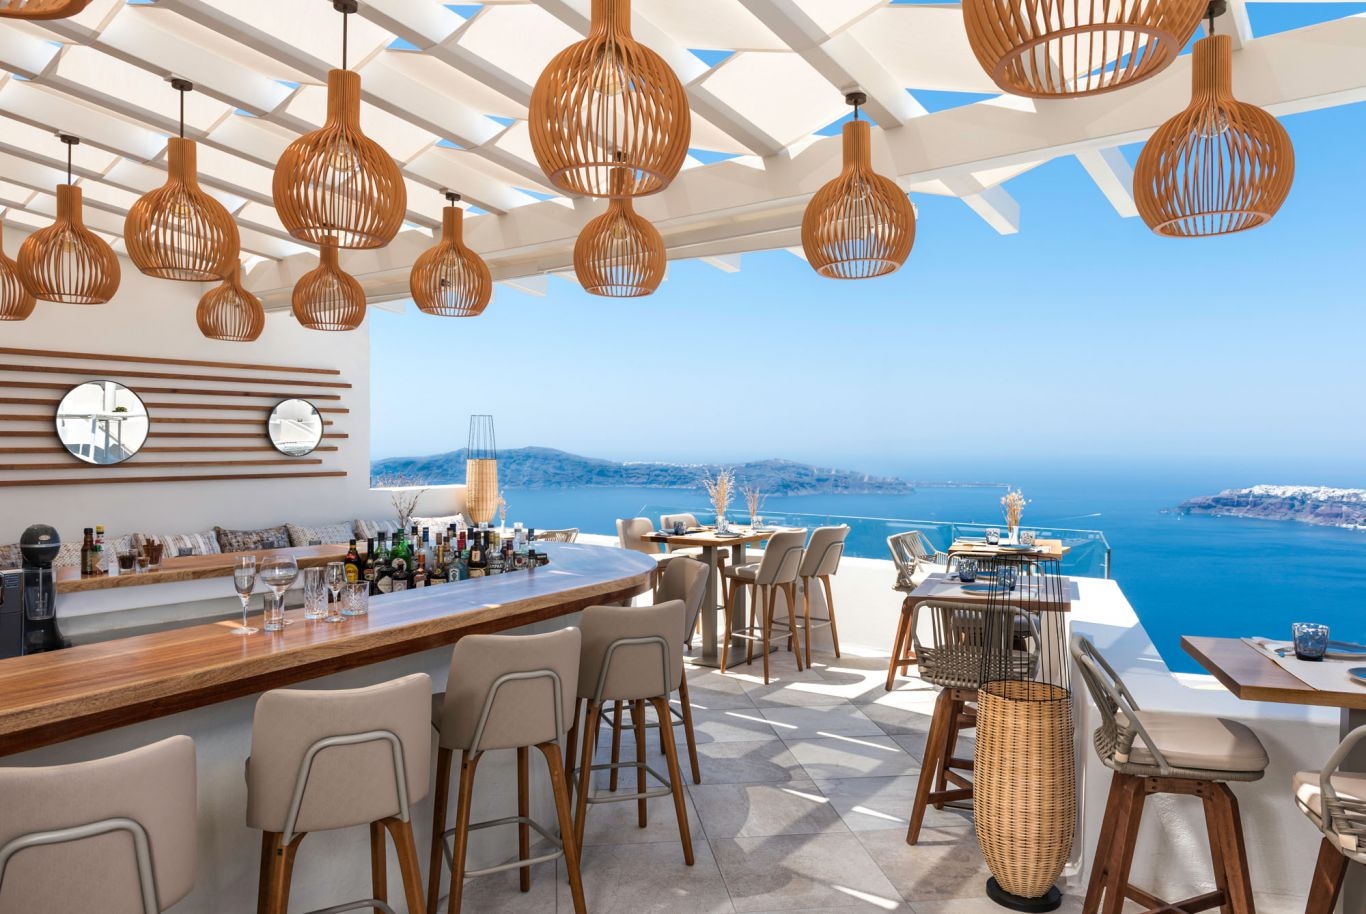 White Lounge Restaurant In Santorini With Stunning Views Of The Volcano And Aegean Sea